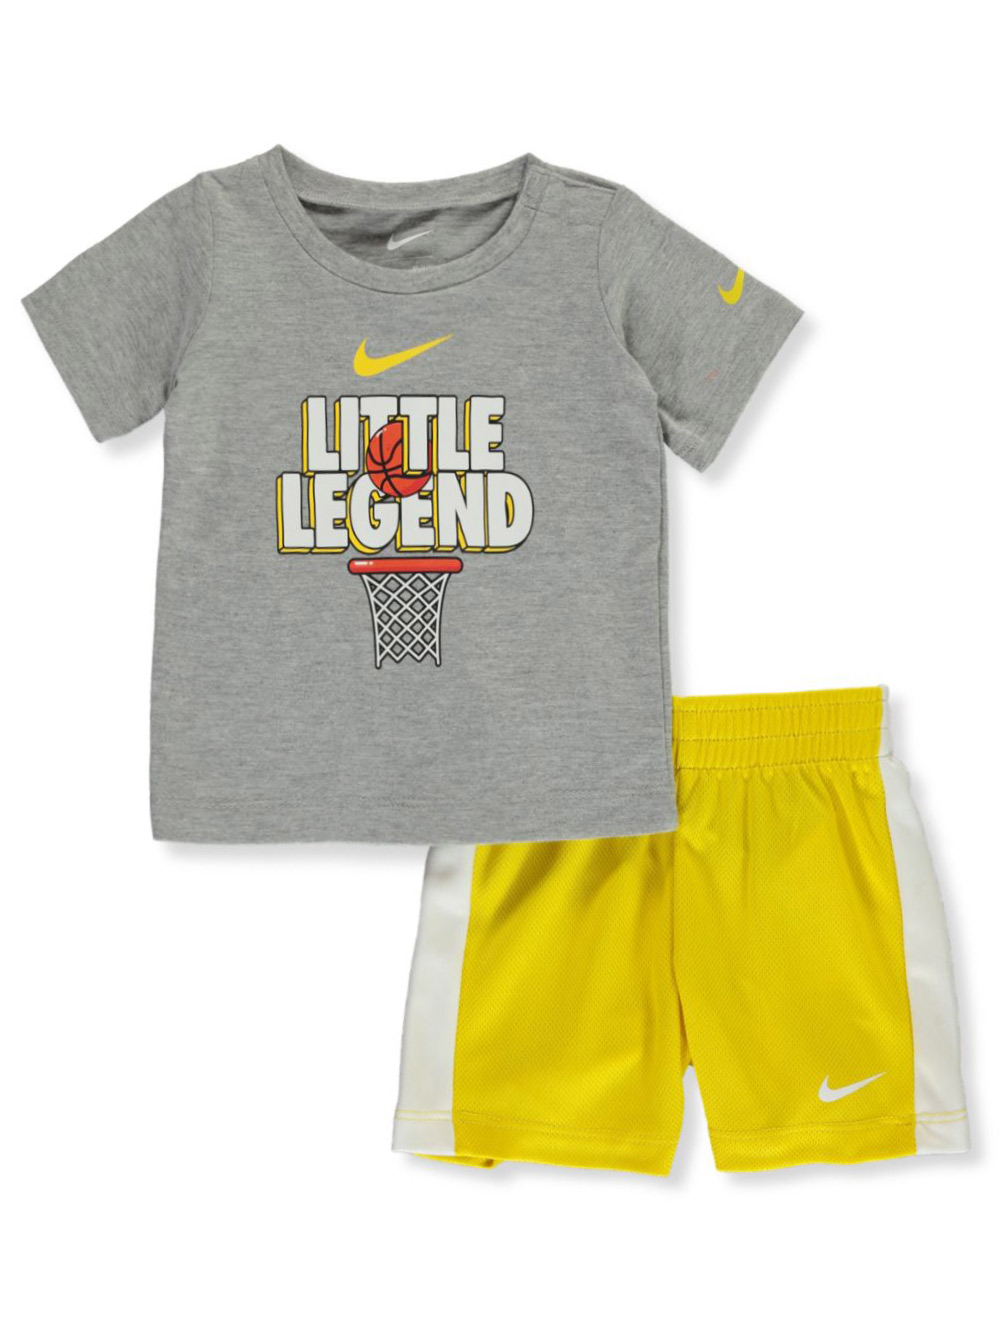 Little Legend 2-Piece Shorts Set Outfit